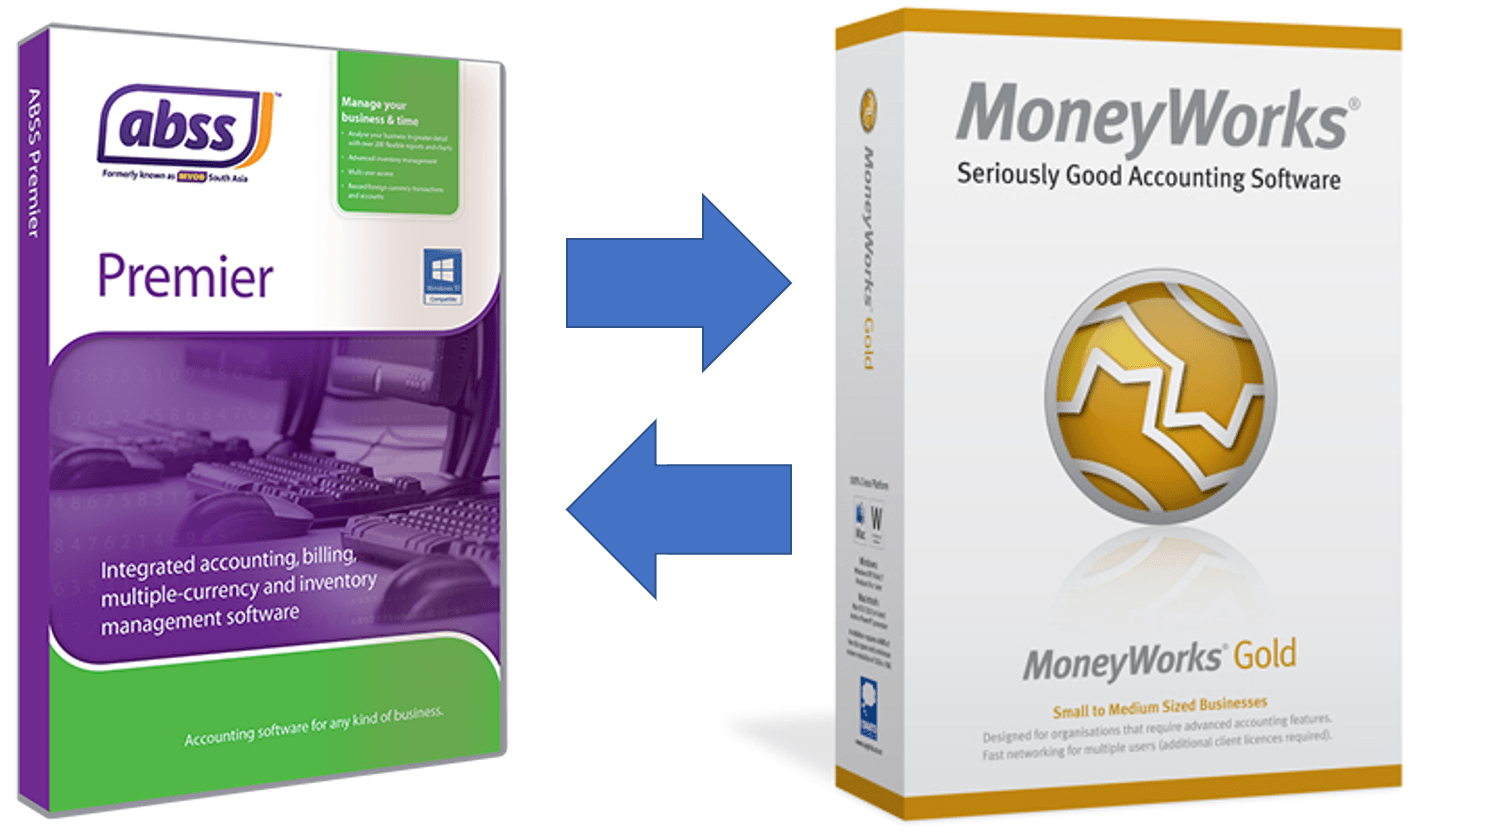 Choosing Accounting Software. Moneyworks - ABSS change accounting software